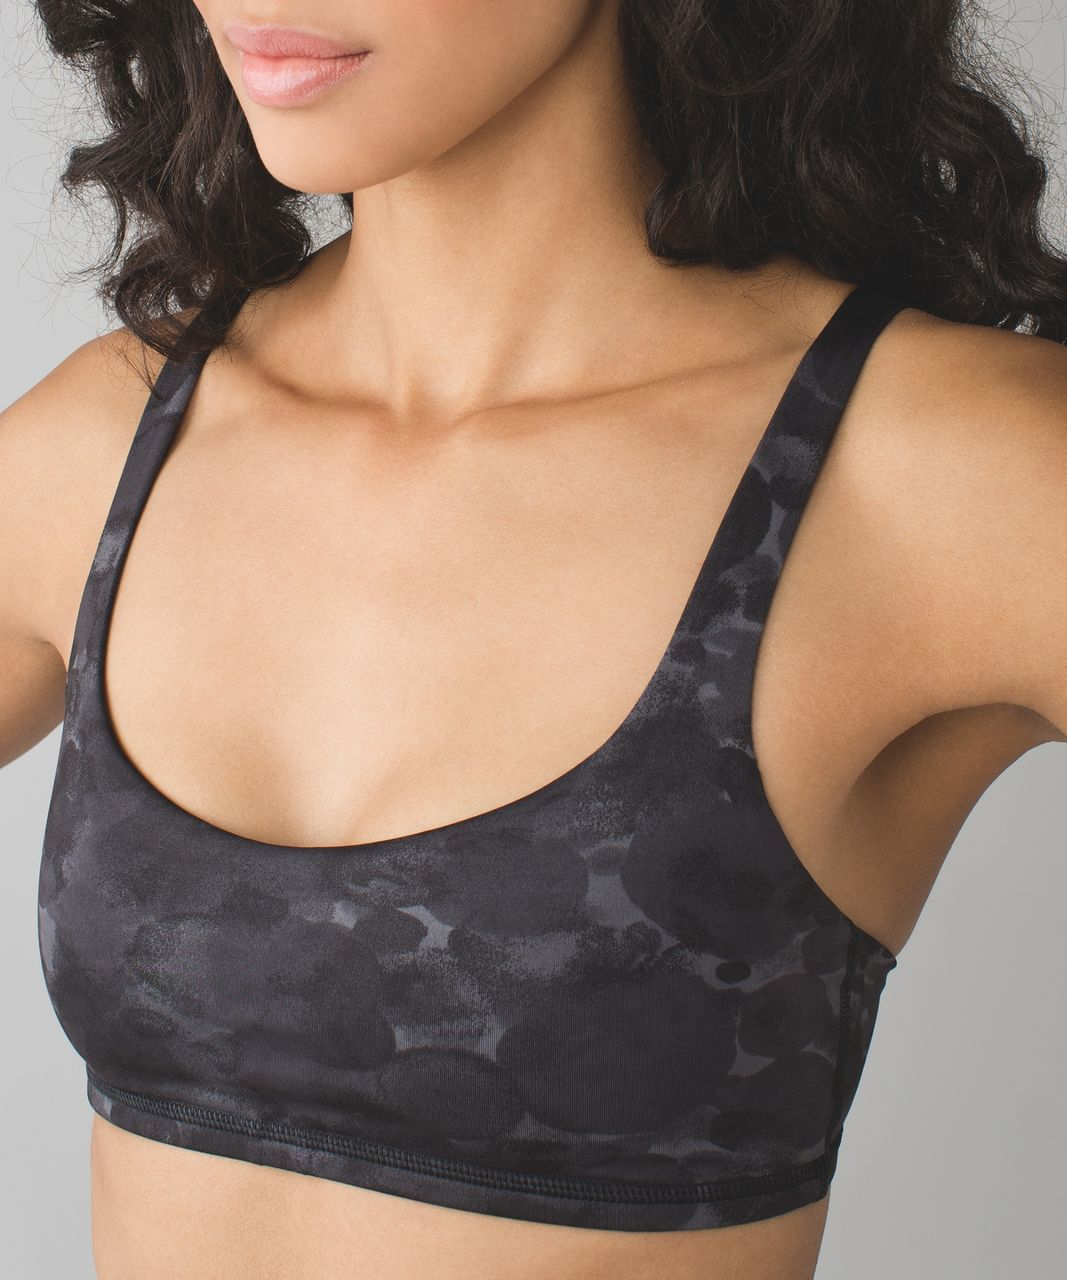 Lululemon Free To Be Bra - Poppy Petals Dark Slate Black / Black